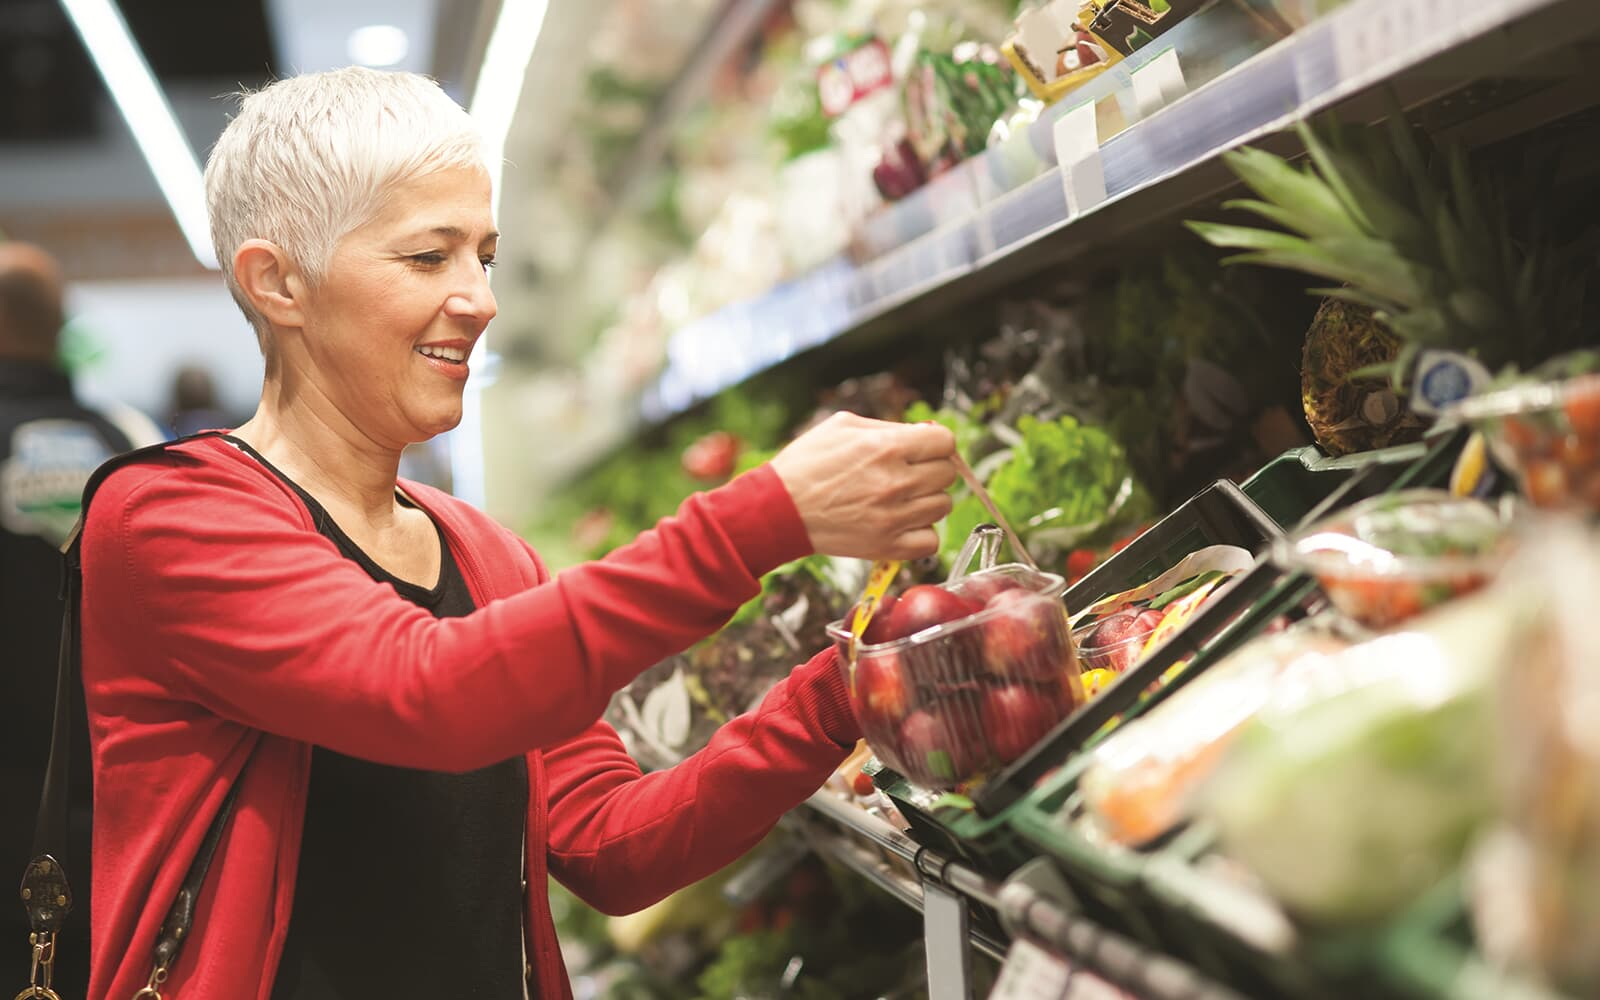 Lifestyle-Stock-Woman-Grocery-Shopping-Brighton-Crossings-Denver-Colorado